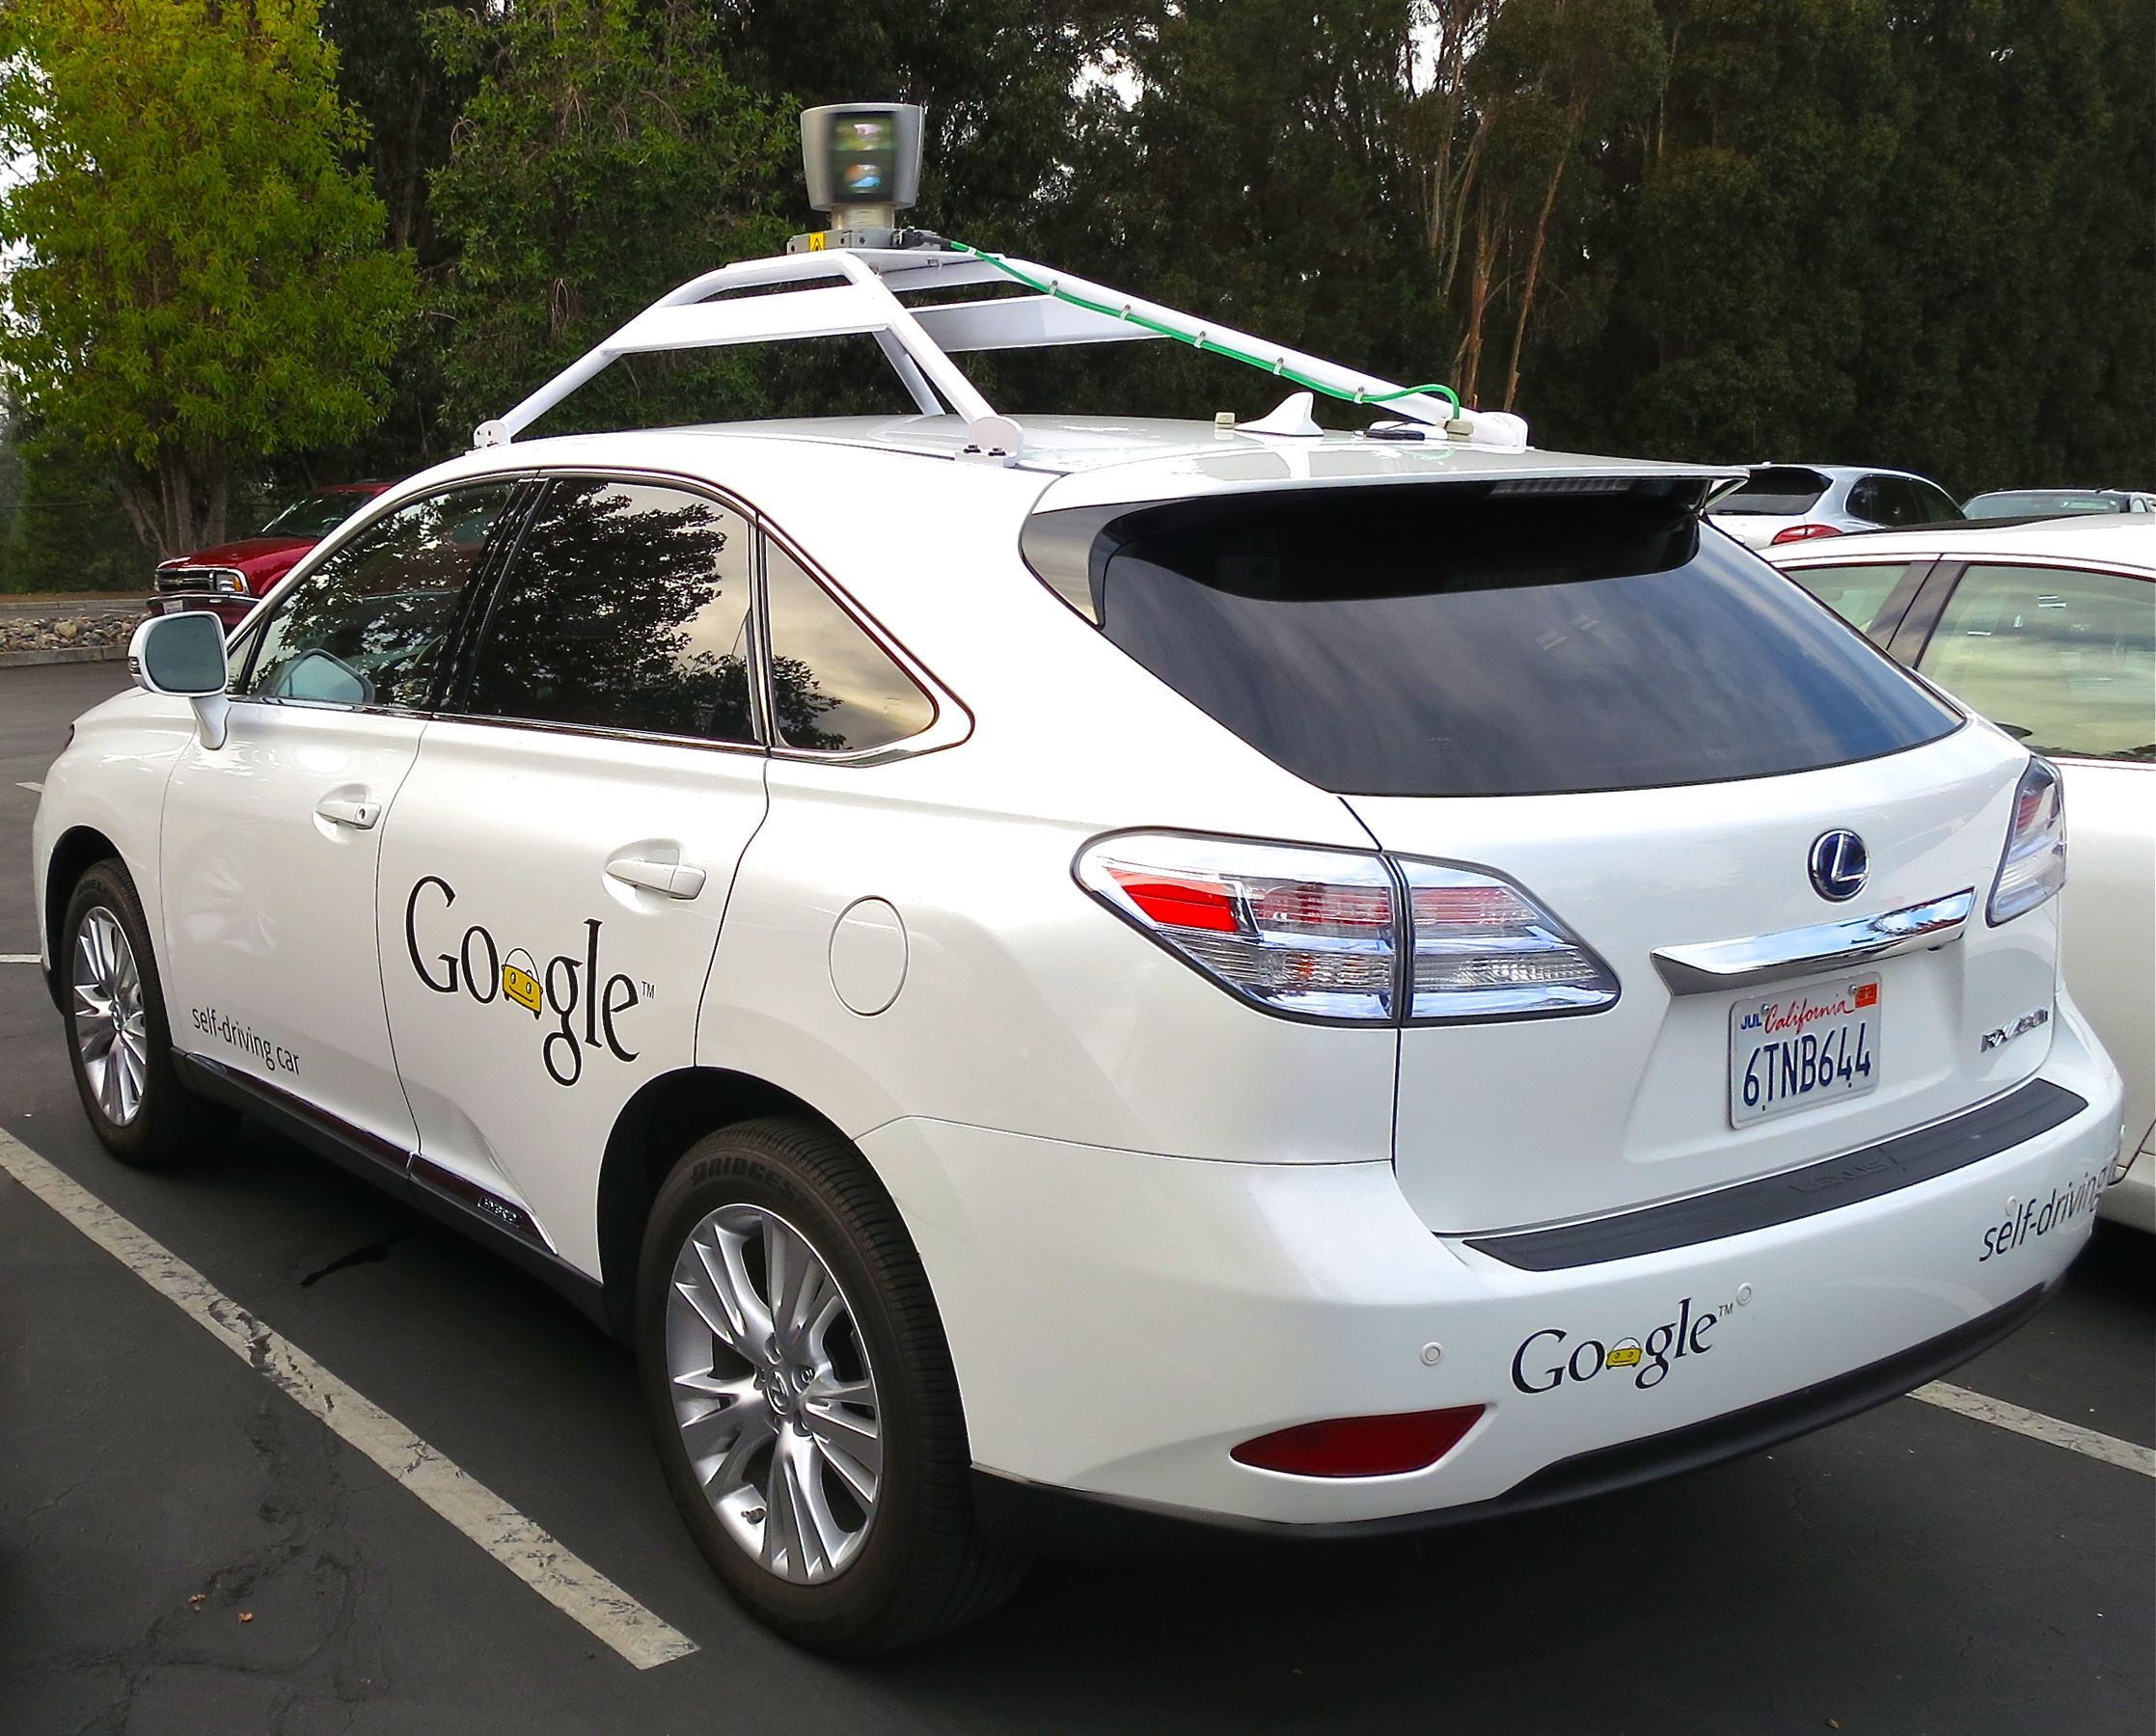 By Driving_Google_Self-Driving_Car.jpg: Steve Jurvetsonderivative work: Mariordo - This file was derived fromDriving Google Self-Driving Car.jpg:, CC BY 2.0, https://commons.wikimedia.org/w/index.php?curid=23386014